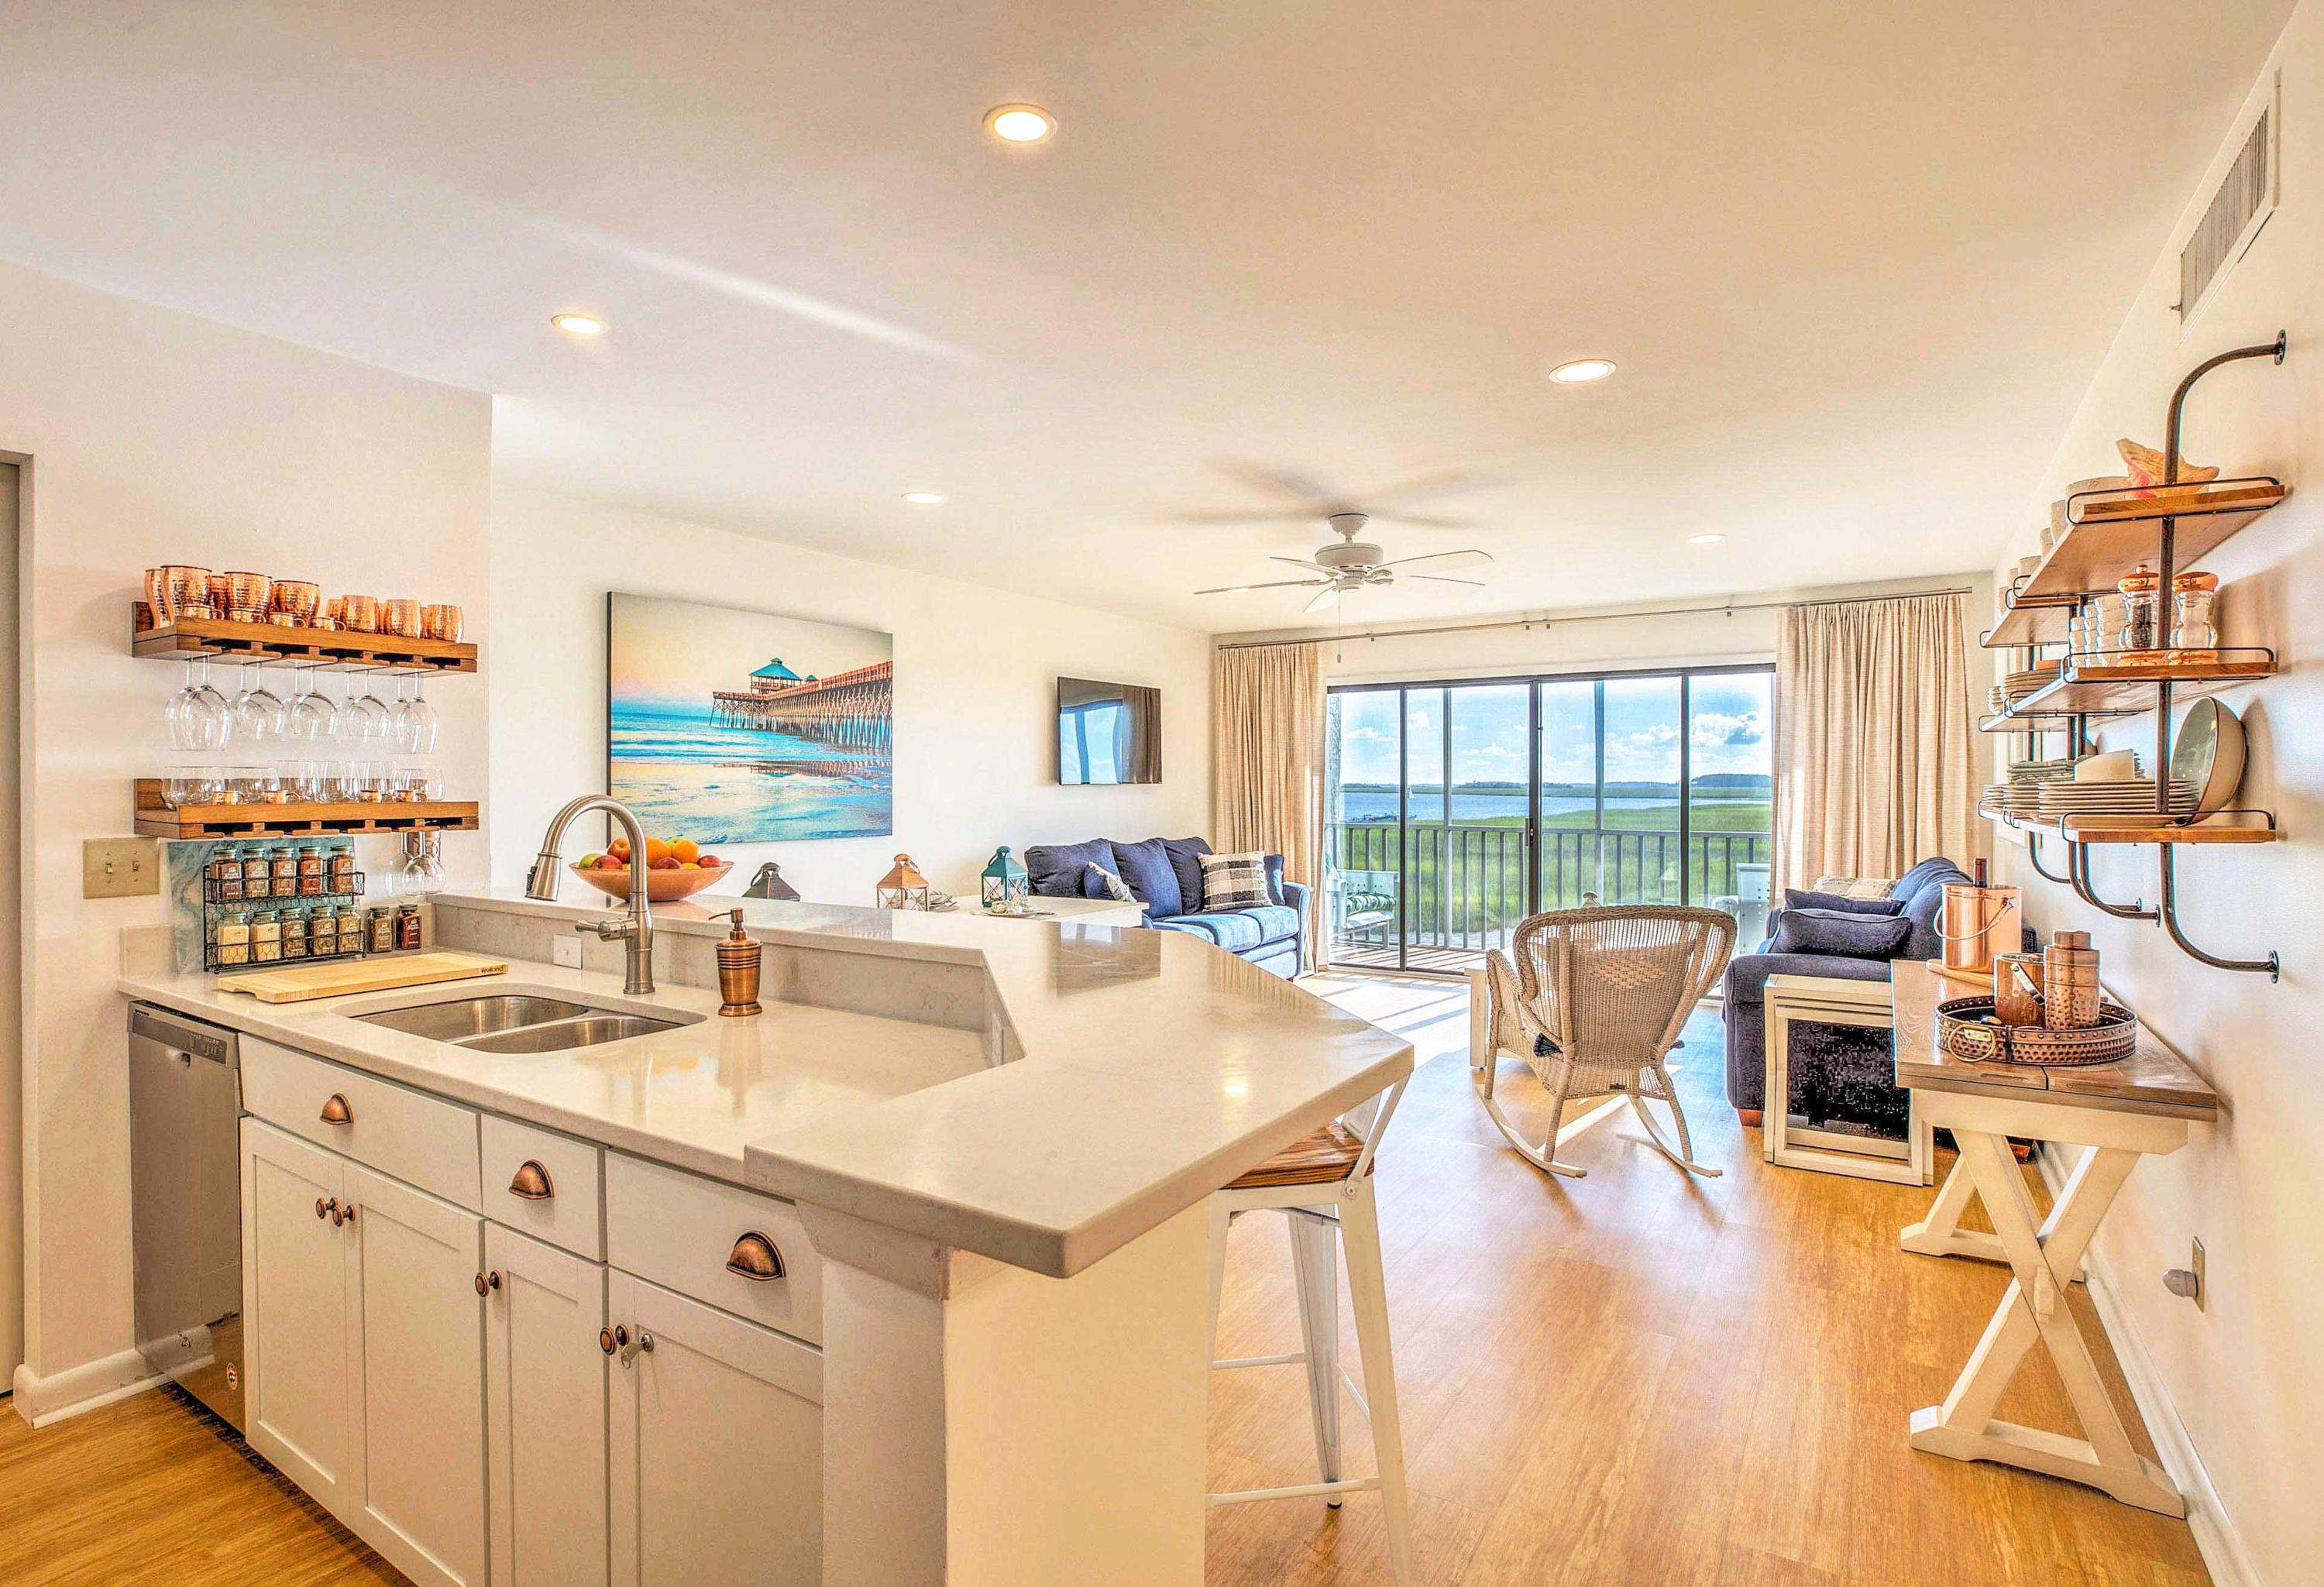 Mariners Cay Homes For Sale - 93 Mariners Cay, Folly Beach, SC - 41